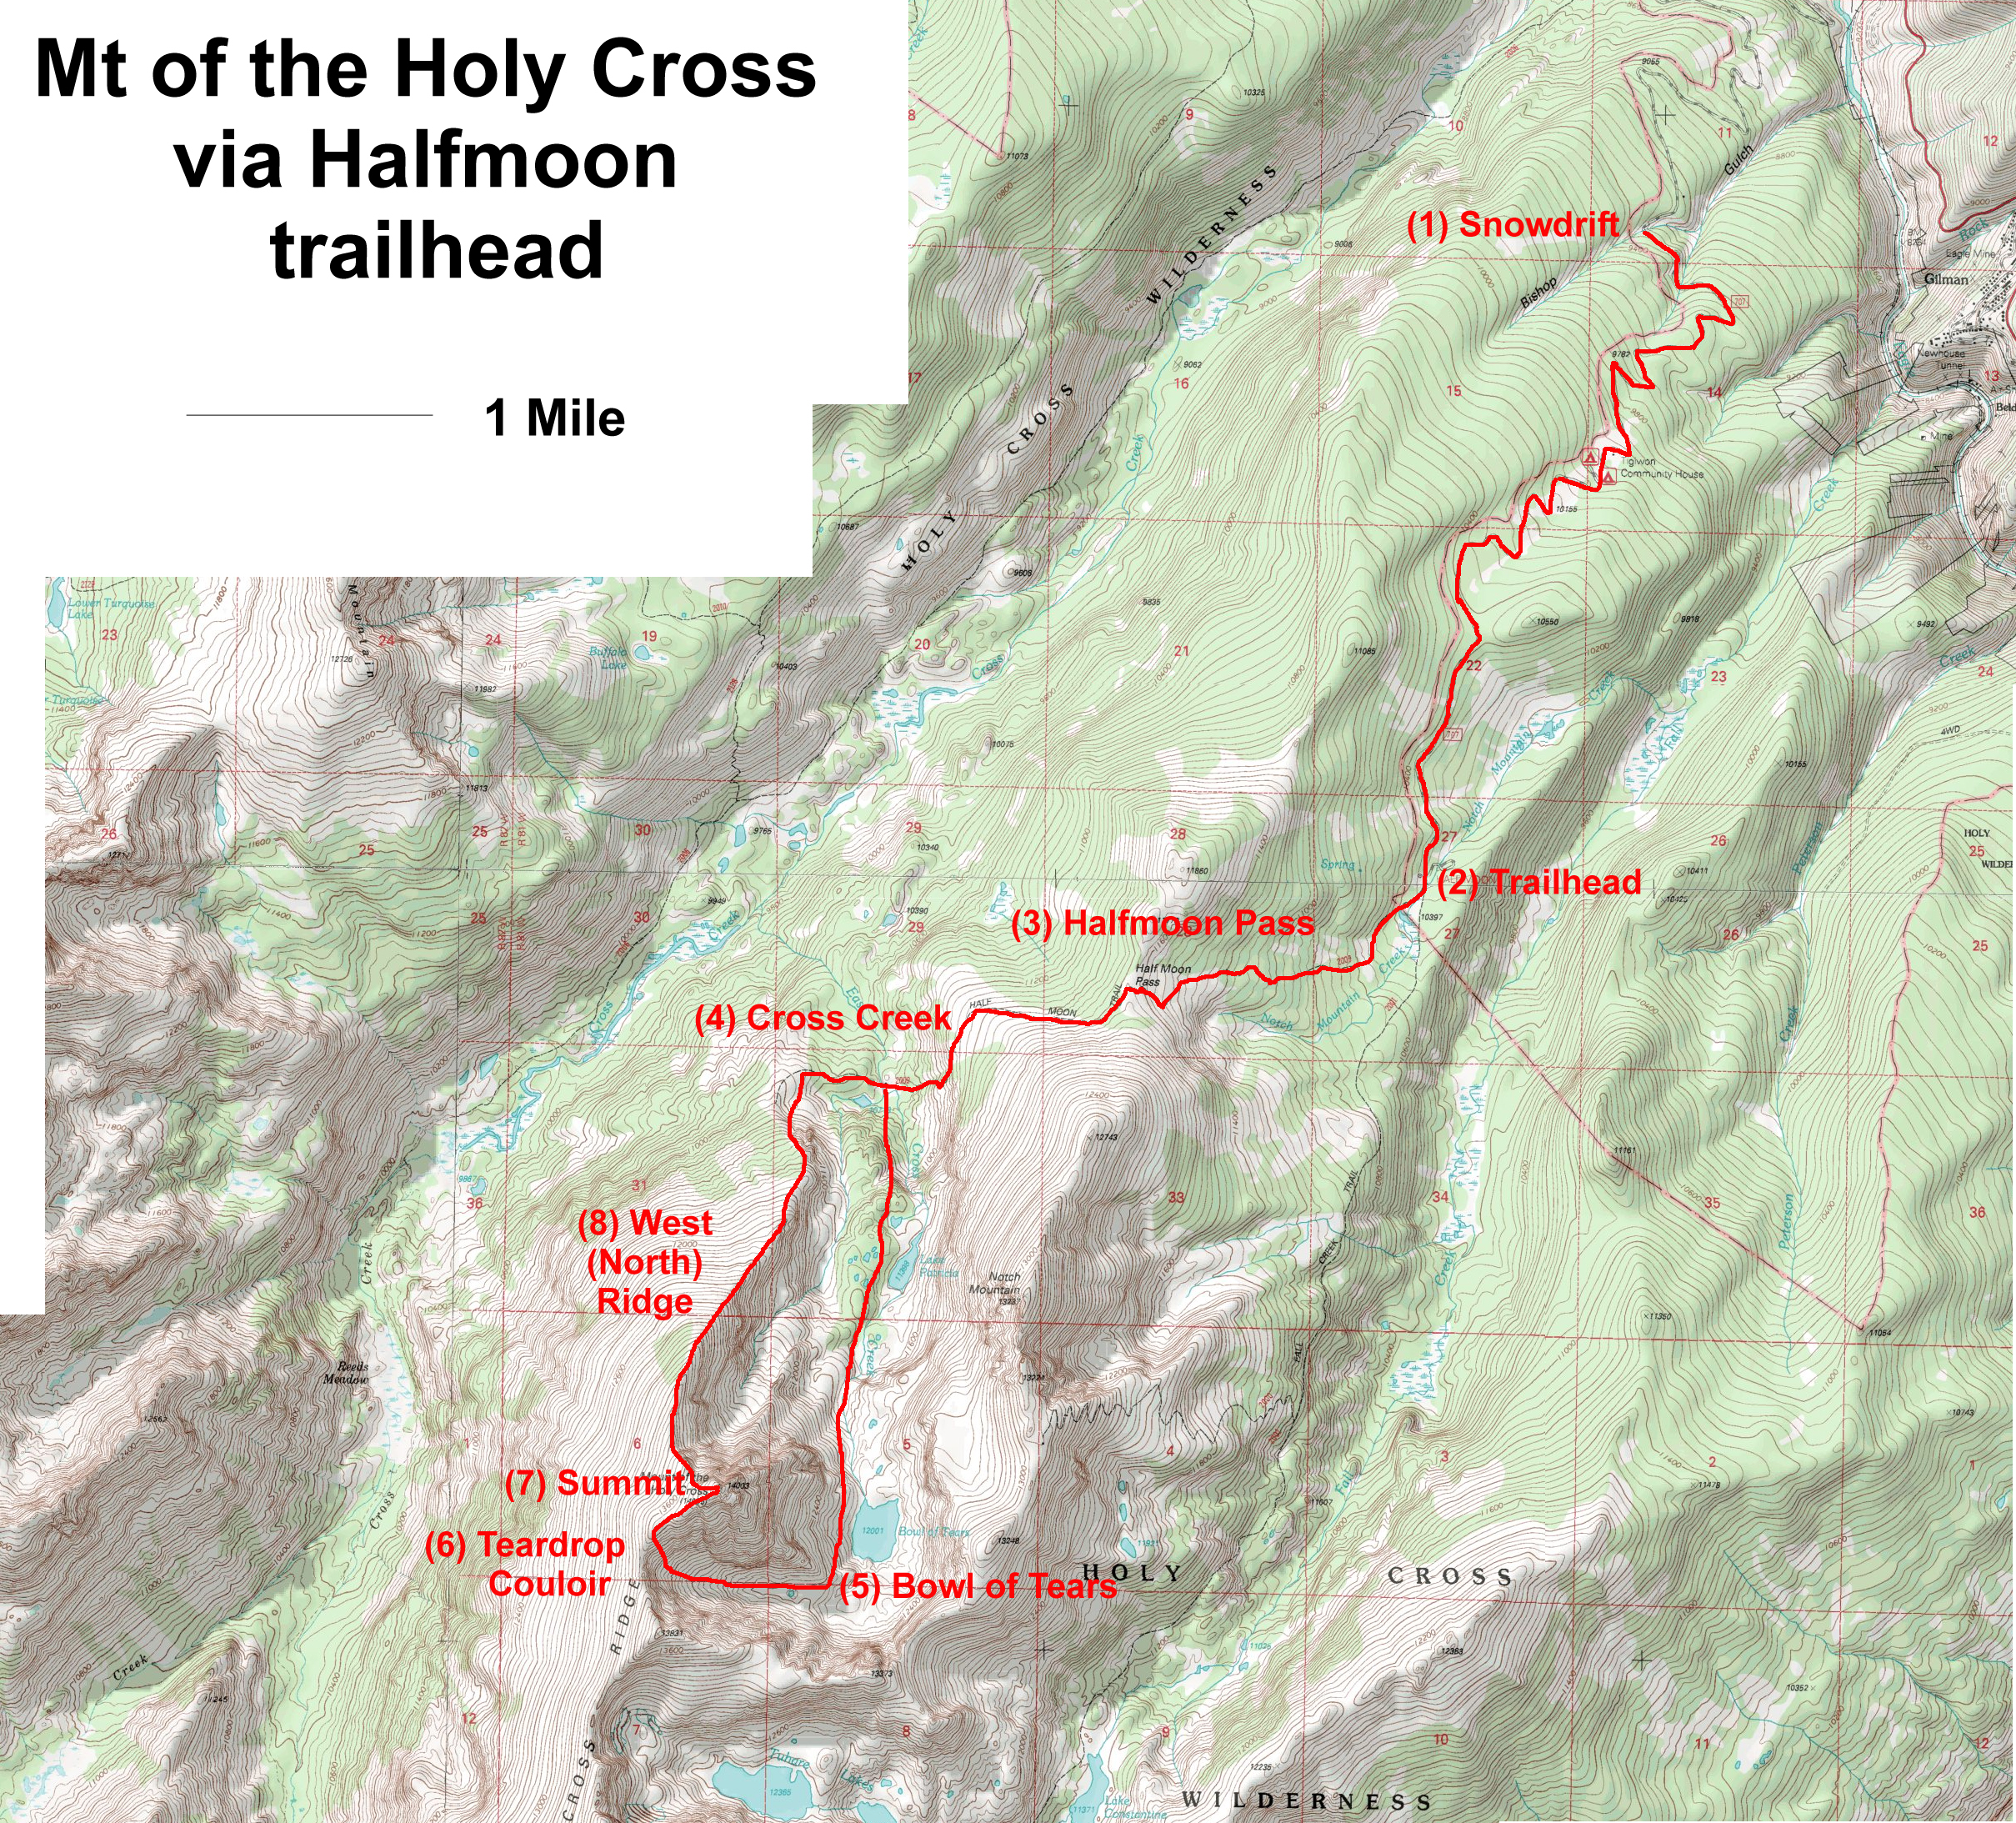 Crucified on Mount of the Holy Cross   PeakMind